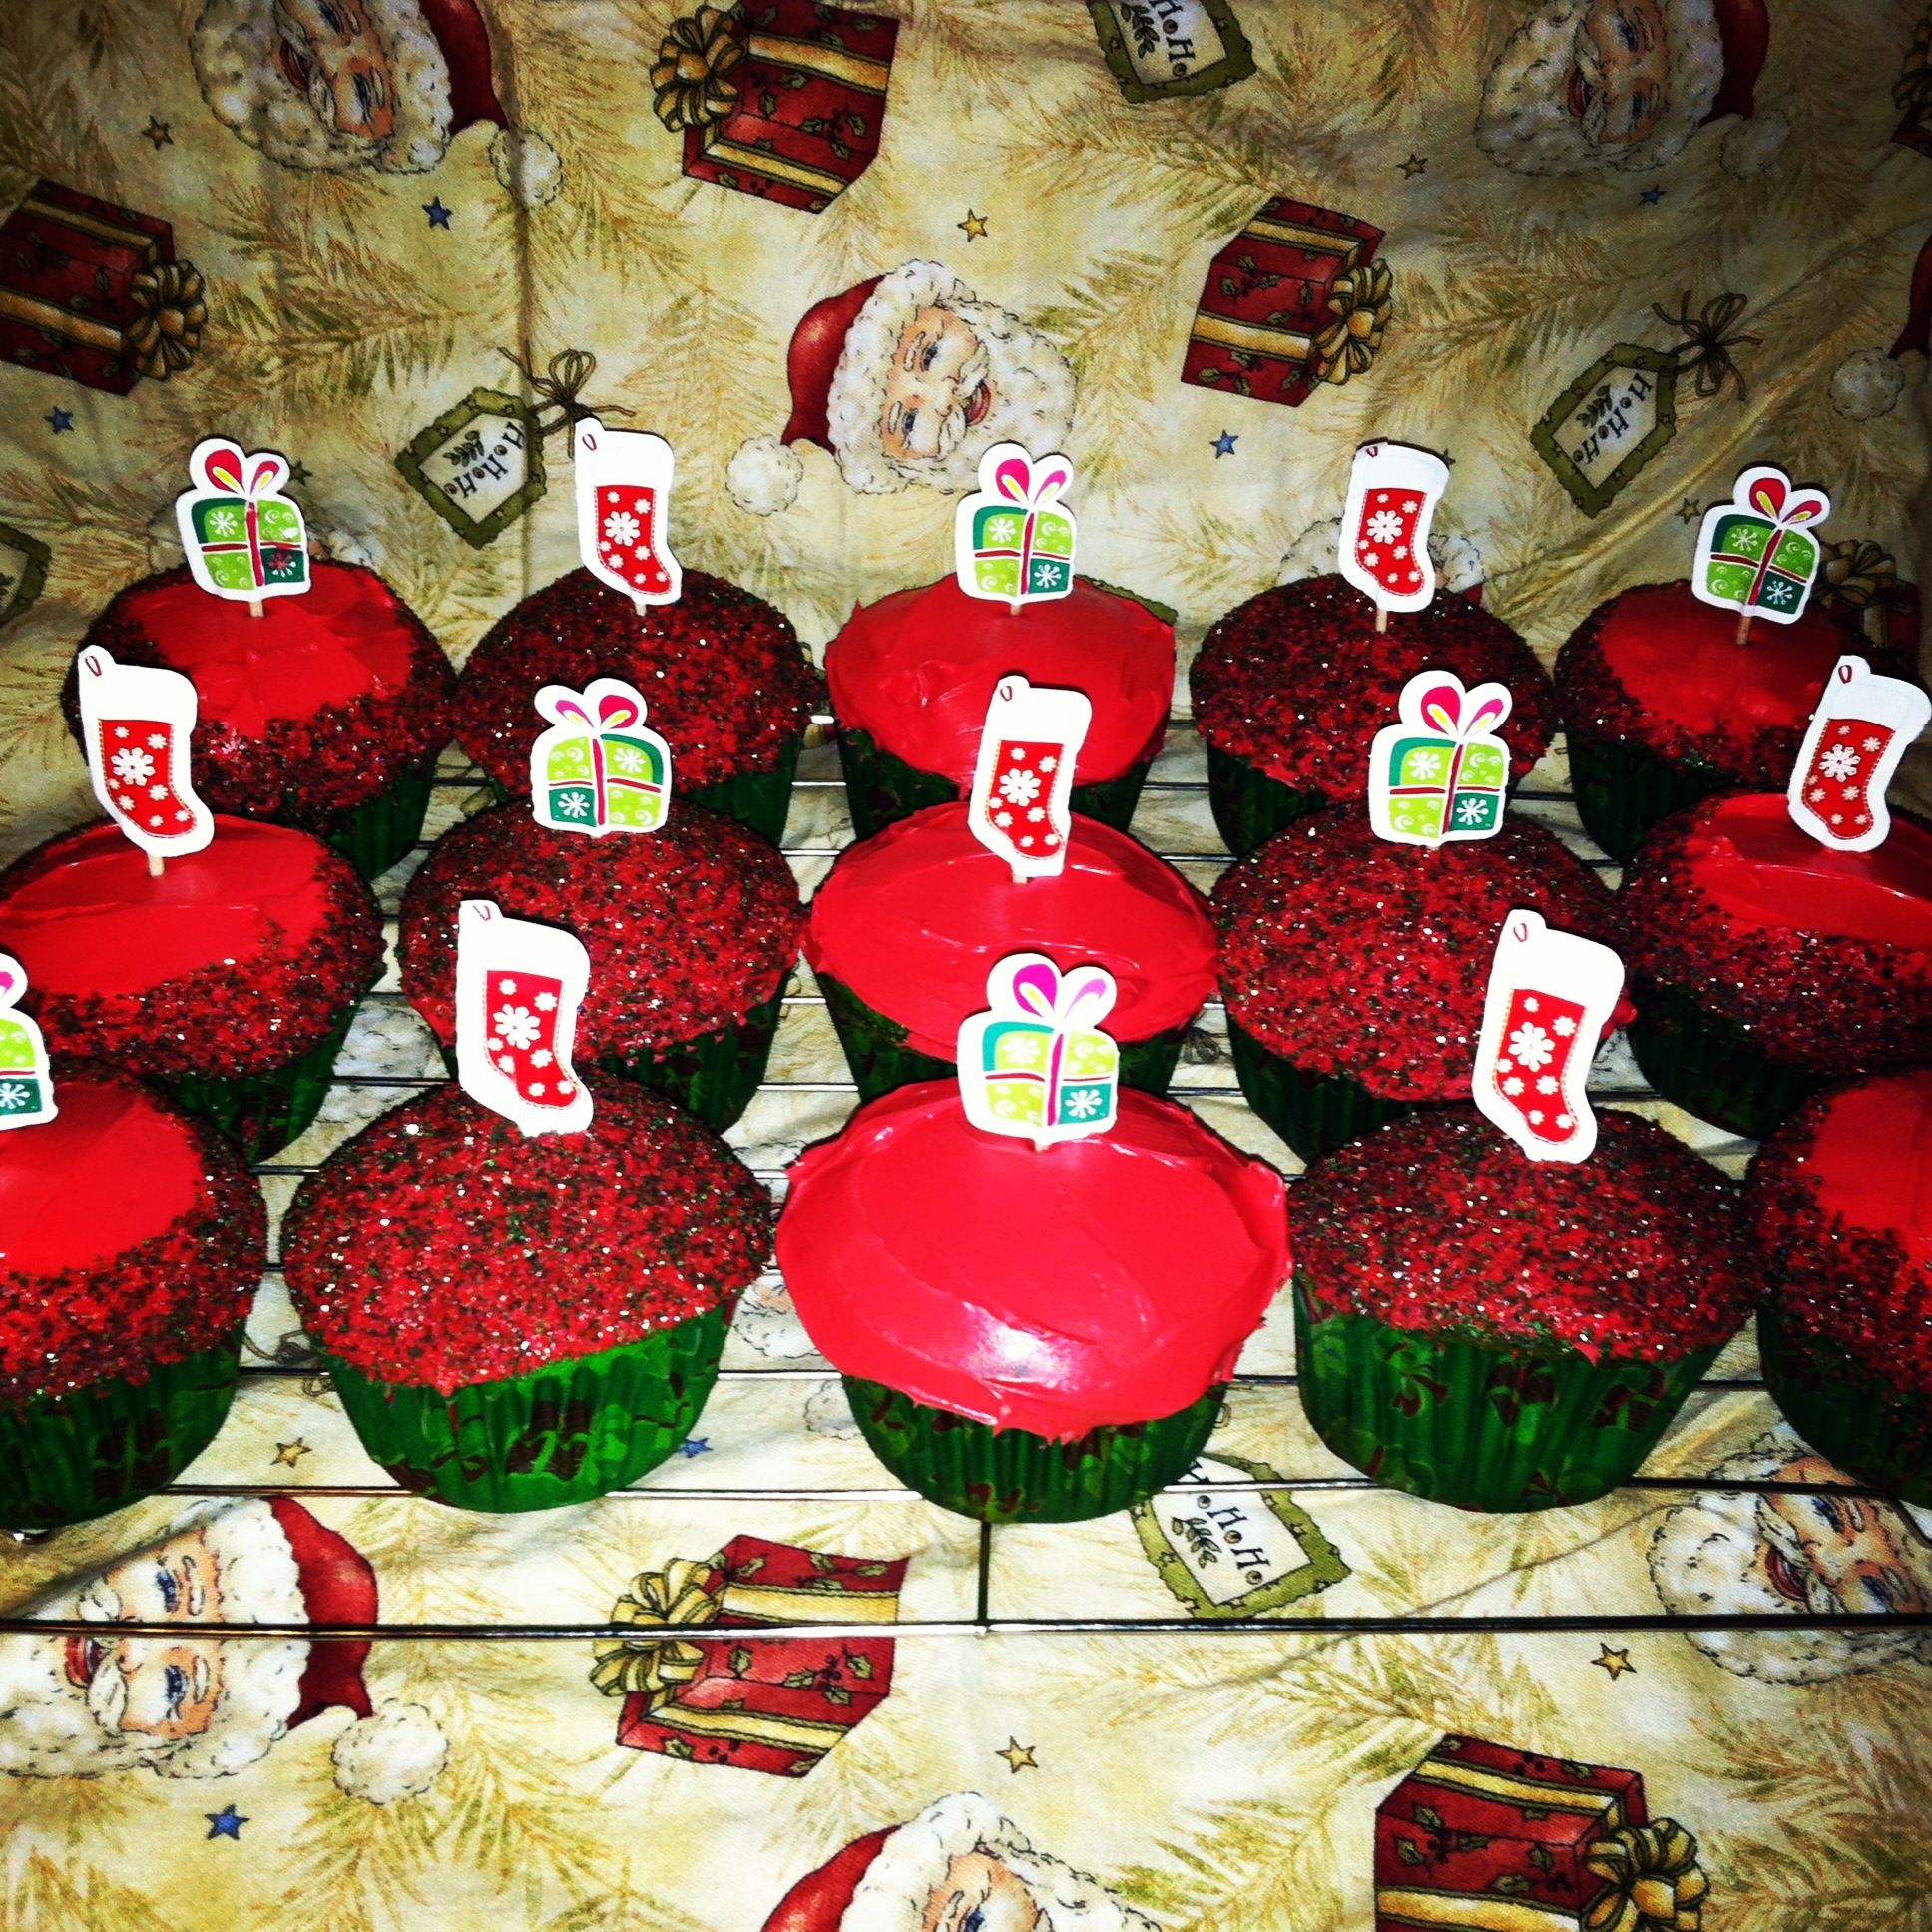 Christmas Cupcakes. (White cake with green food coloring and cream cheese frosting with red food coloring. Picks and liners are from the dollar tree) Have Fun  ❄ MERRY CHRISTMAS  ⛄